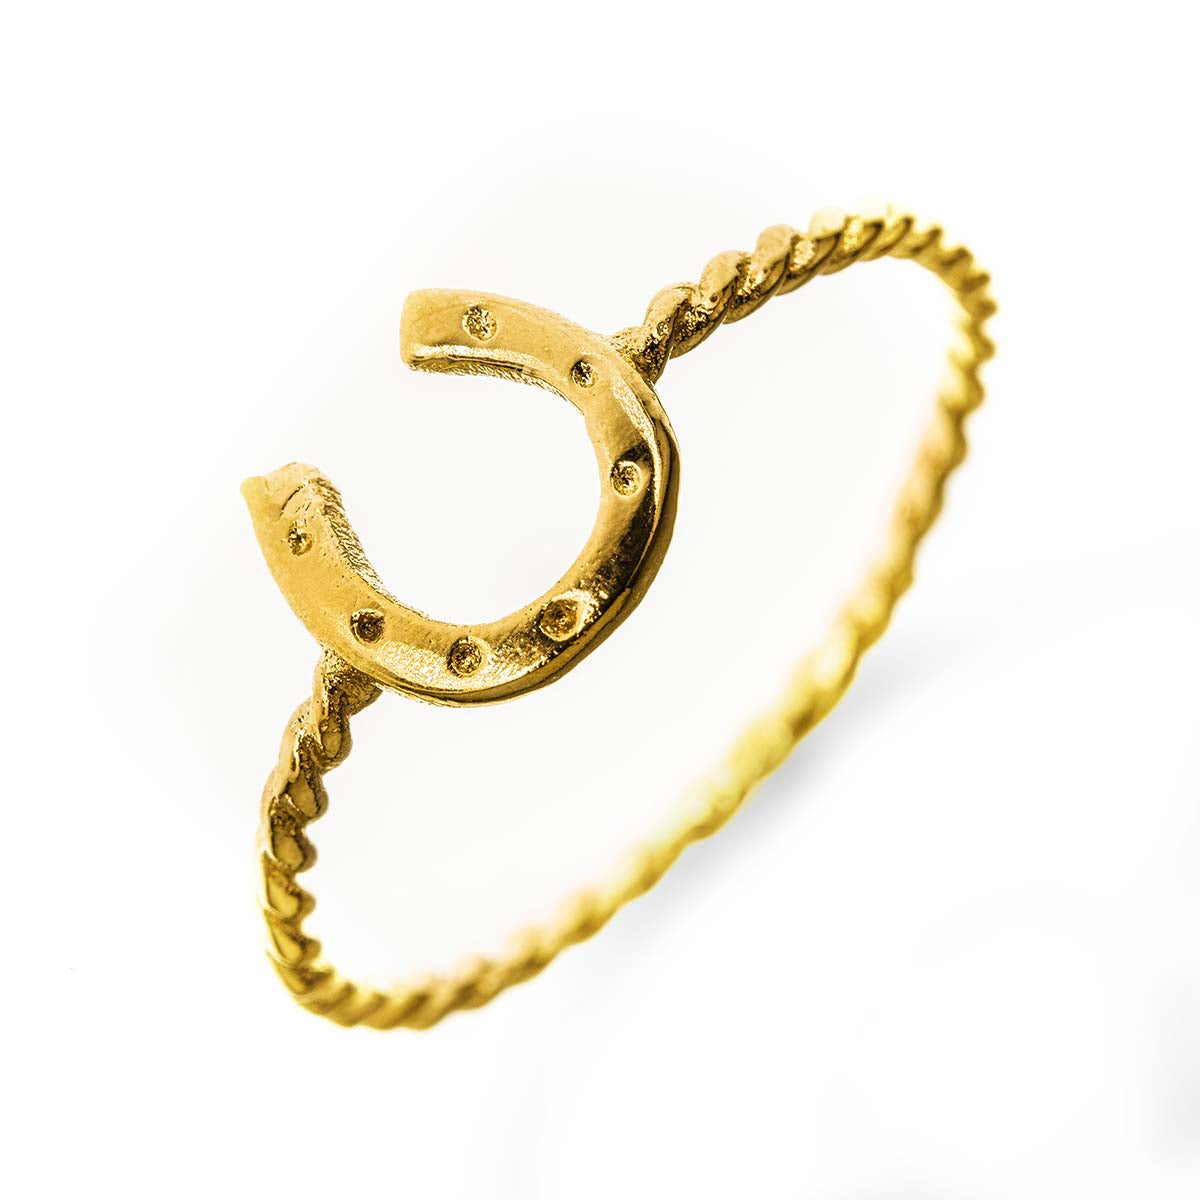 Horse Shoe 14k Gold Filled Ring